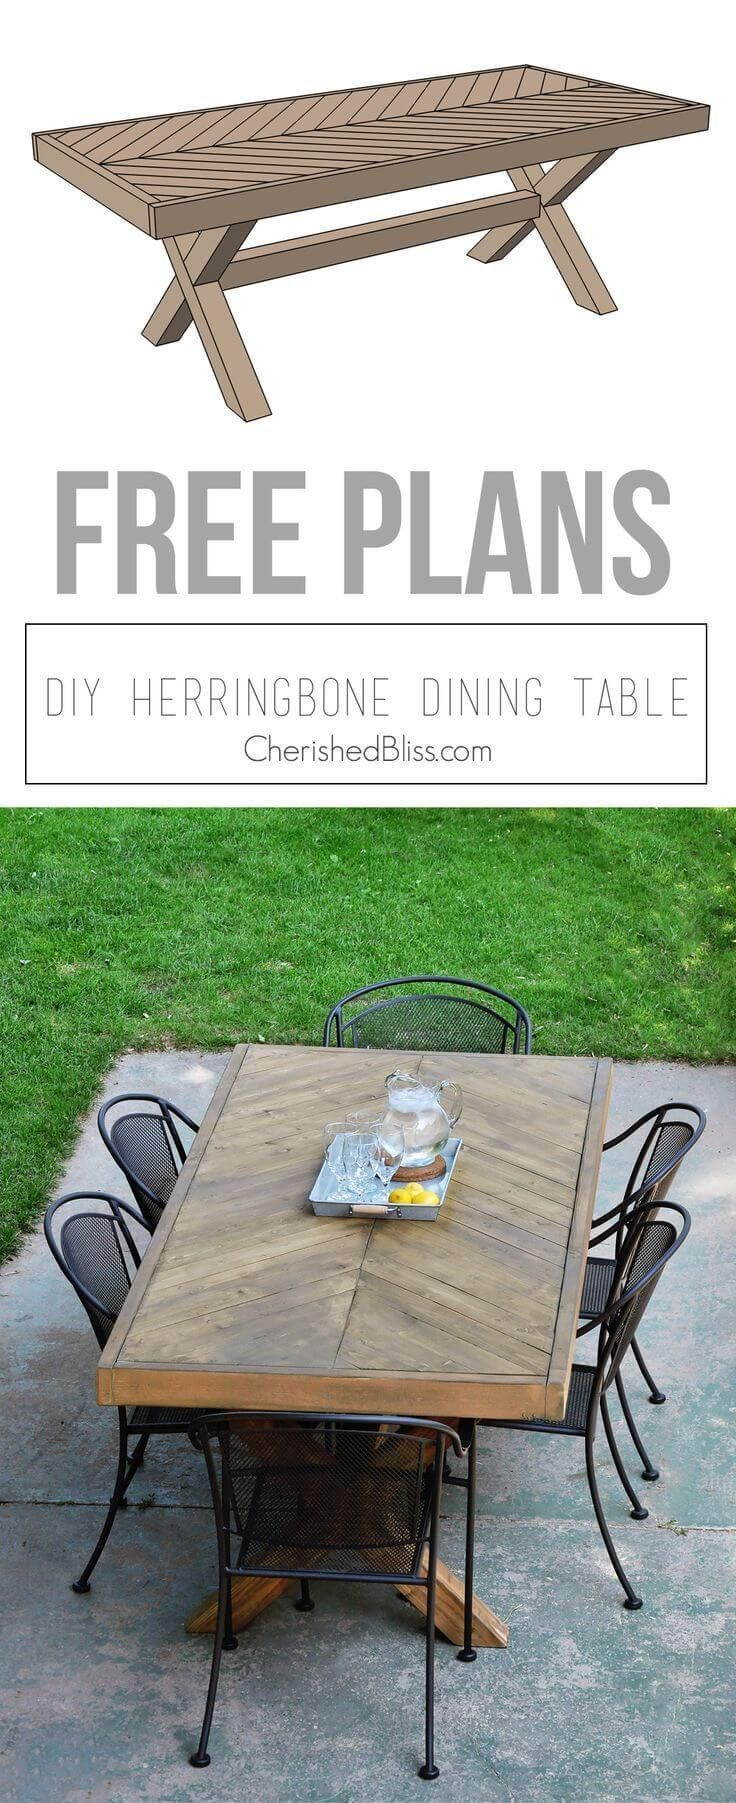 Tables greene s amish furniture part 2 - 29 Diy Outdoor Furniture Projects To Beautify Your Outdoor Space